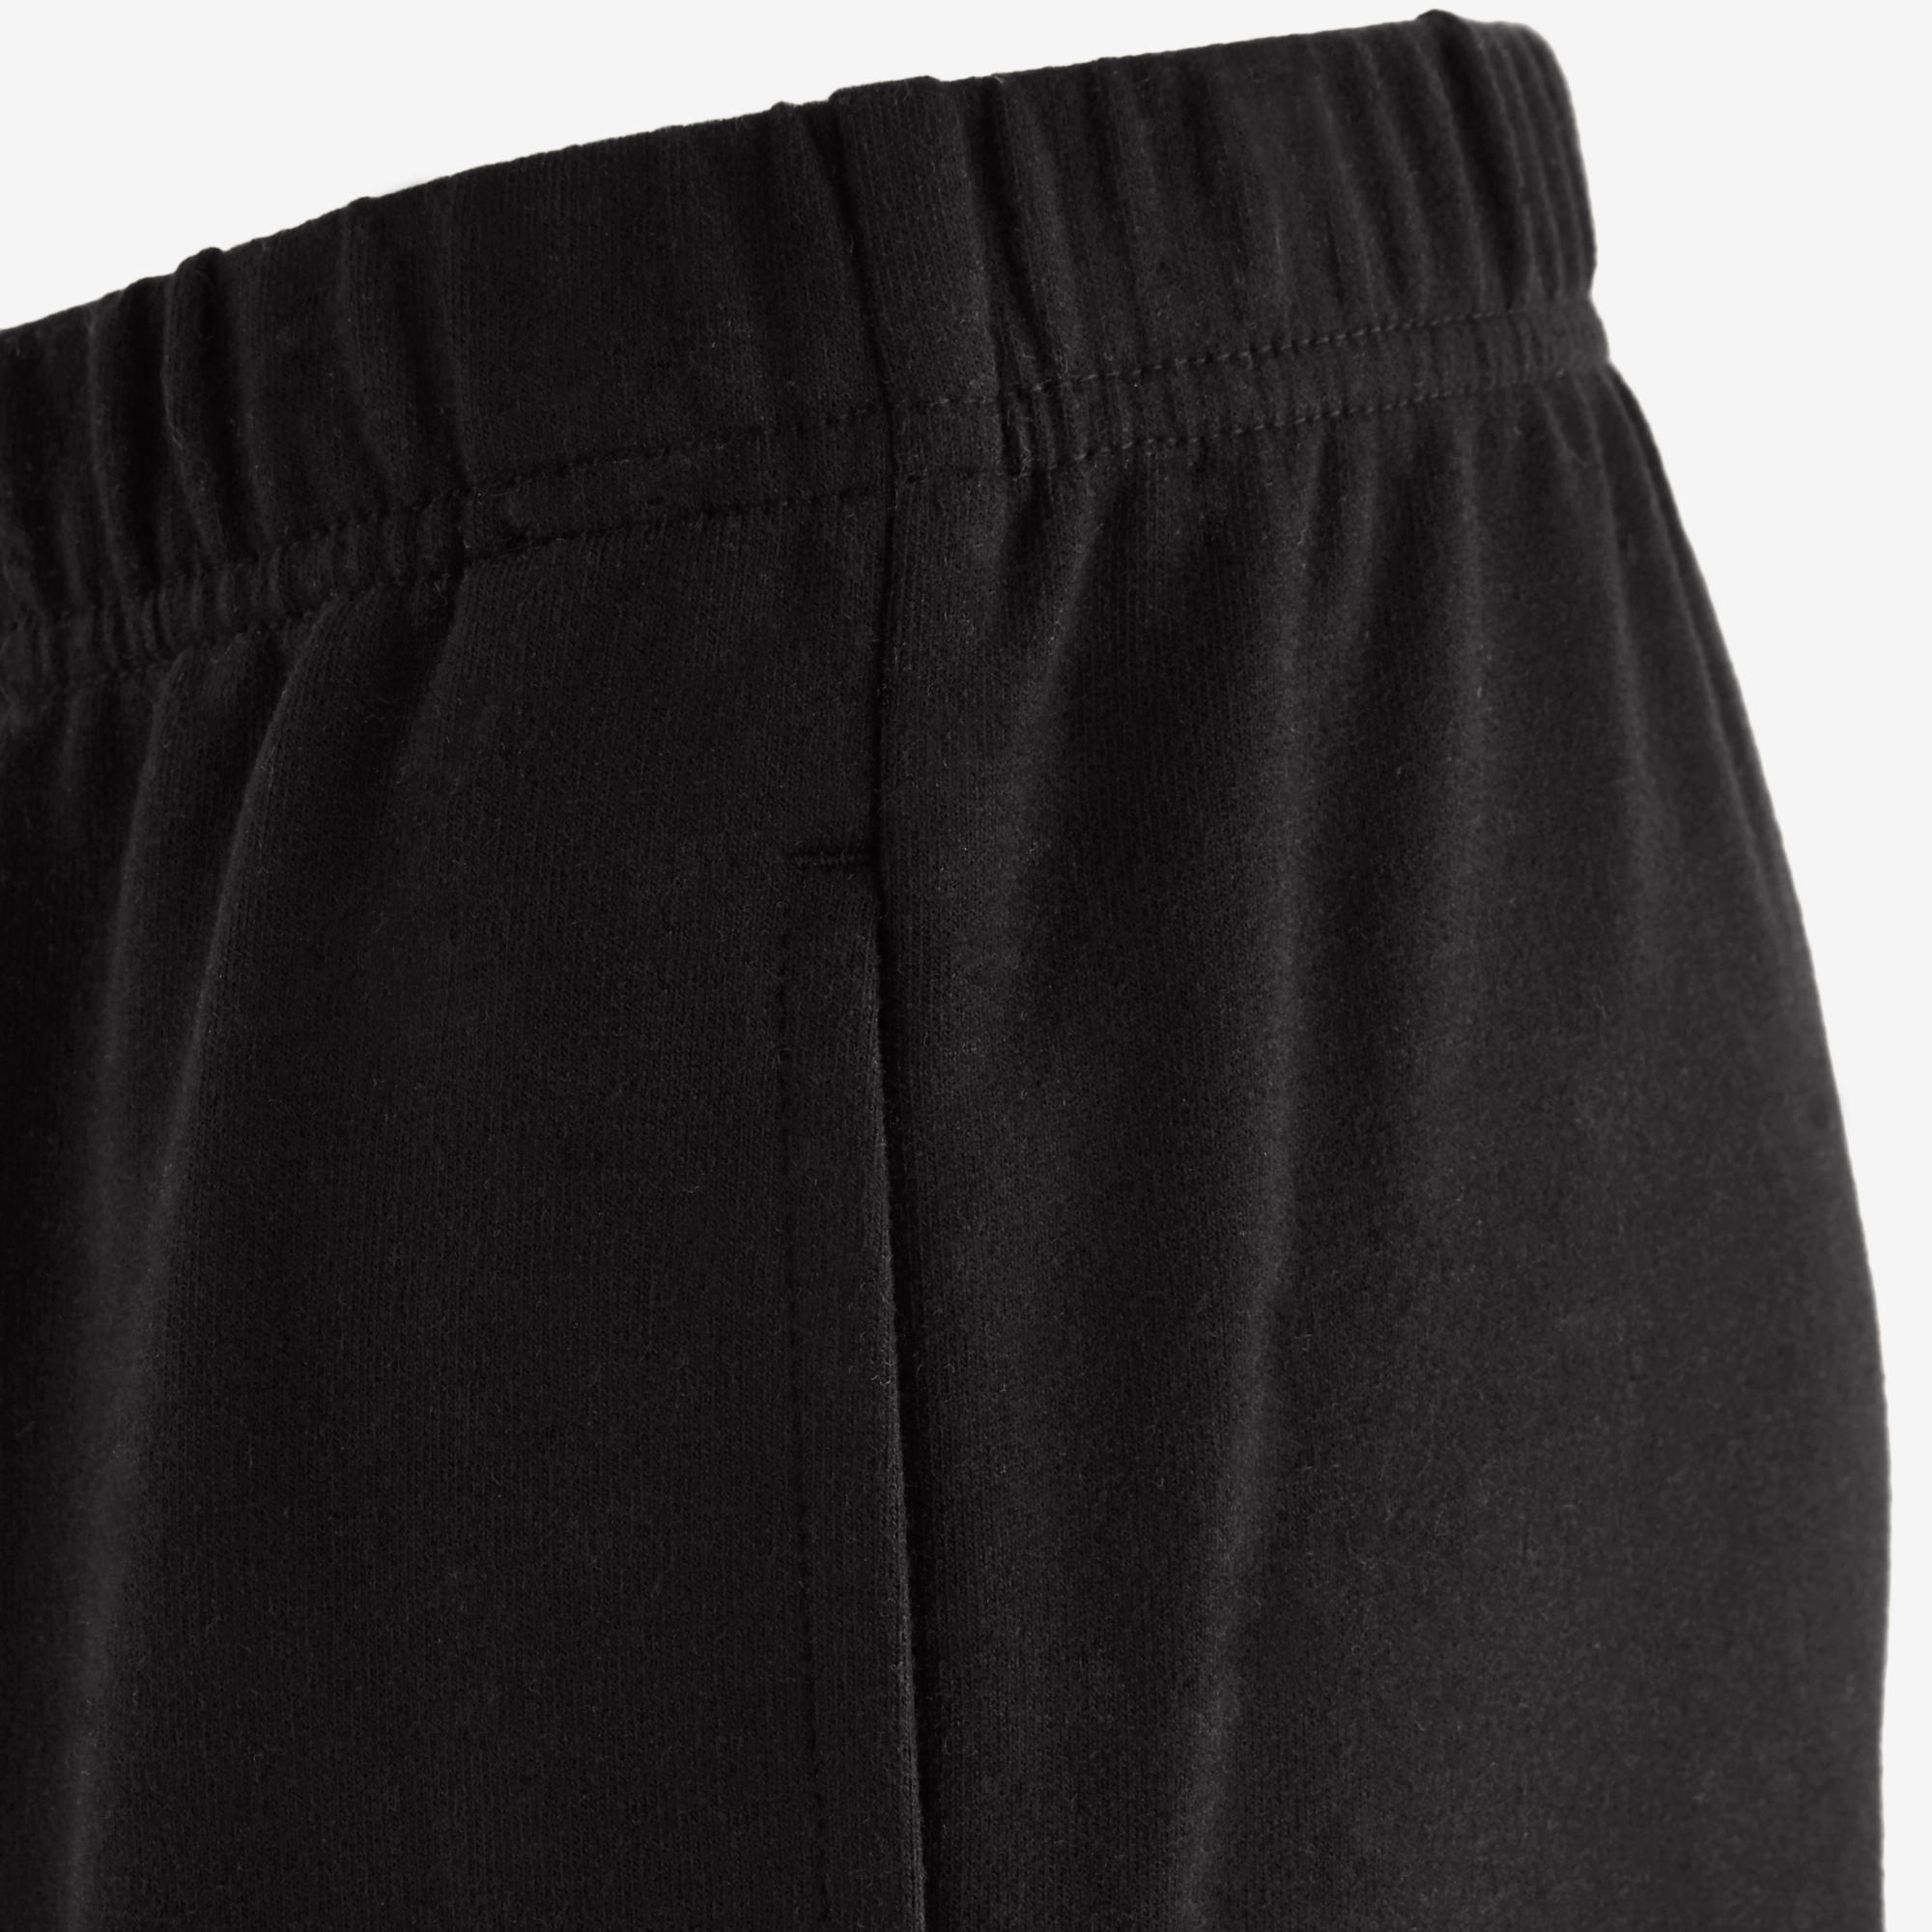 100 Boys' Gym Bottoms - Black